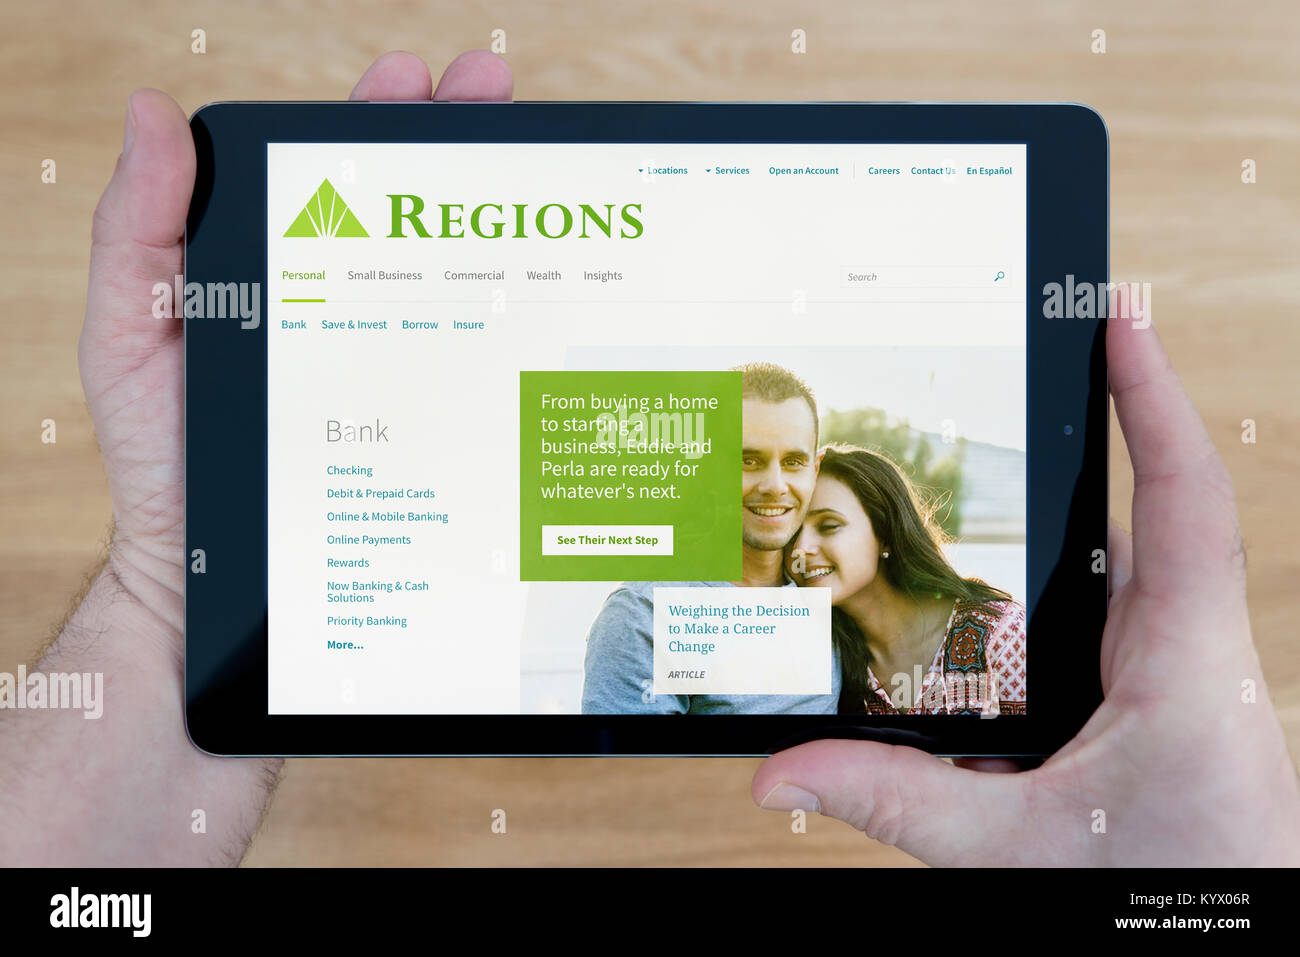 A man looks at the Regions Financial Corporation website on his iPad tablet device, with a wooden table top background - Stock Image